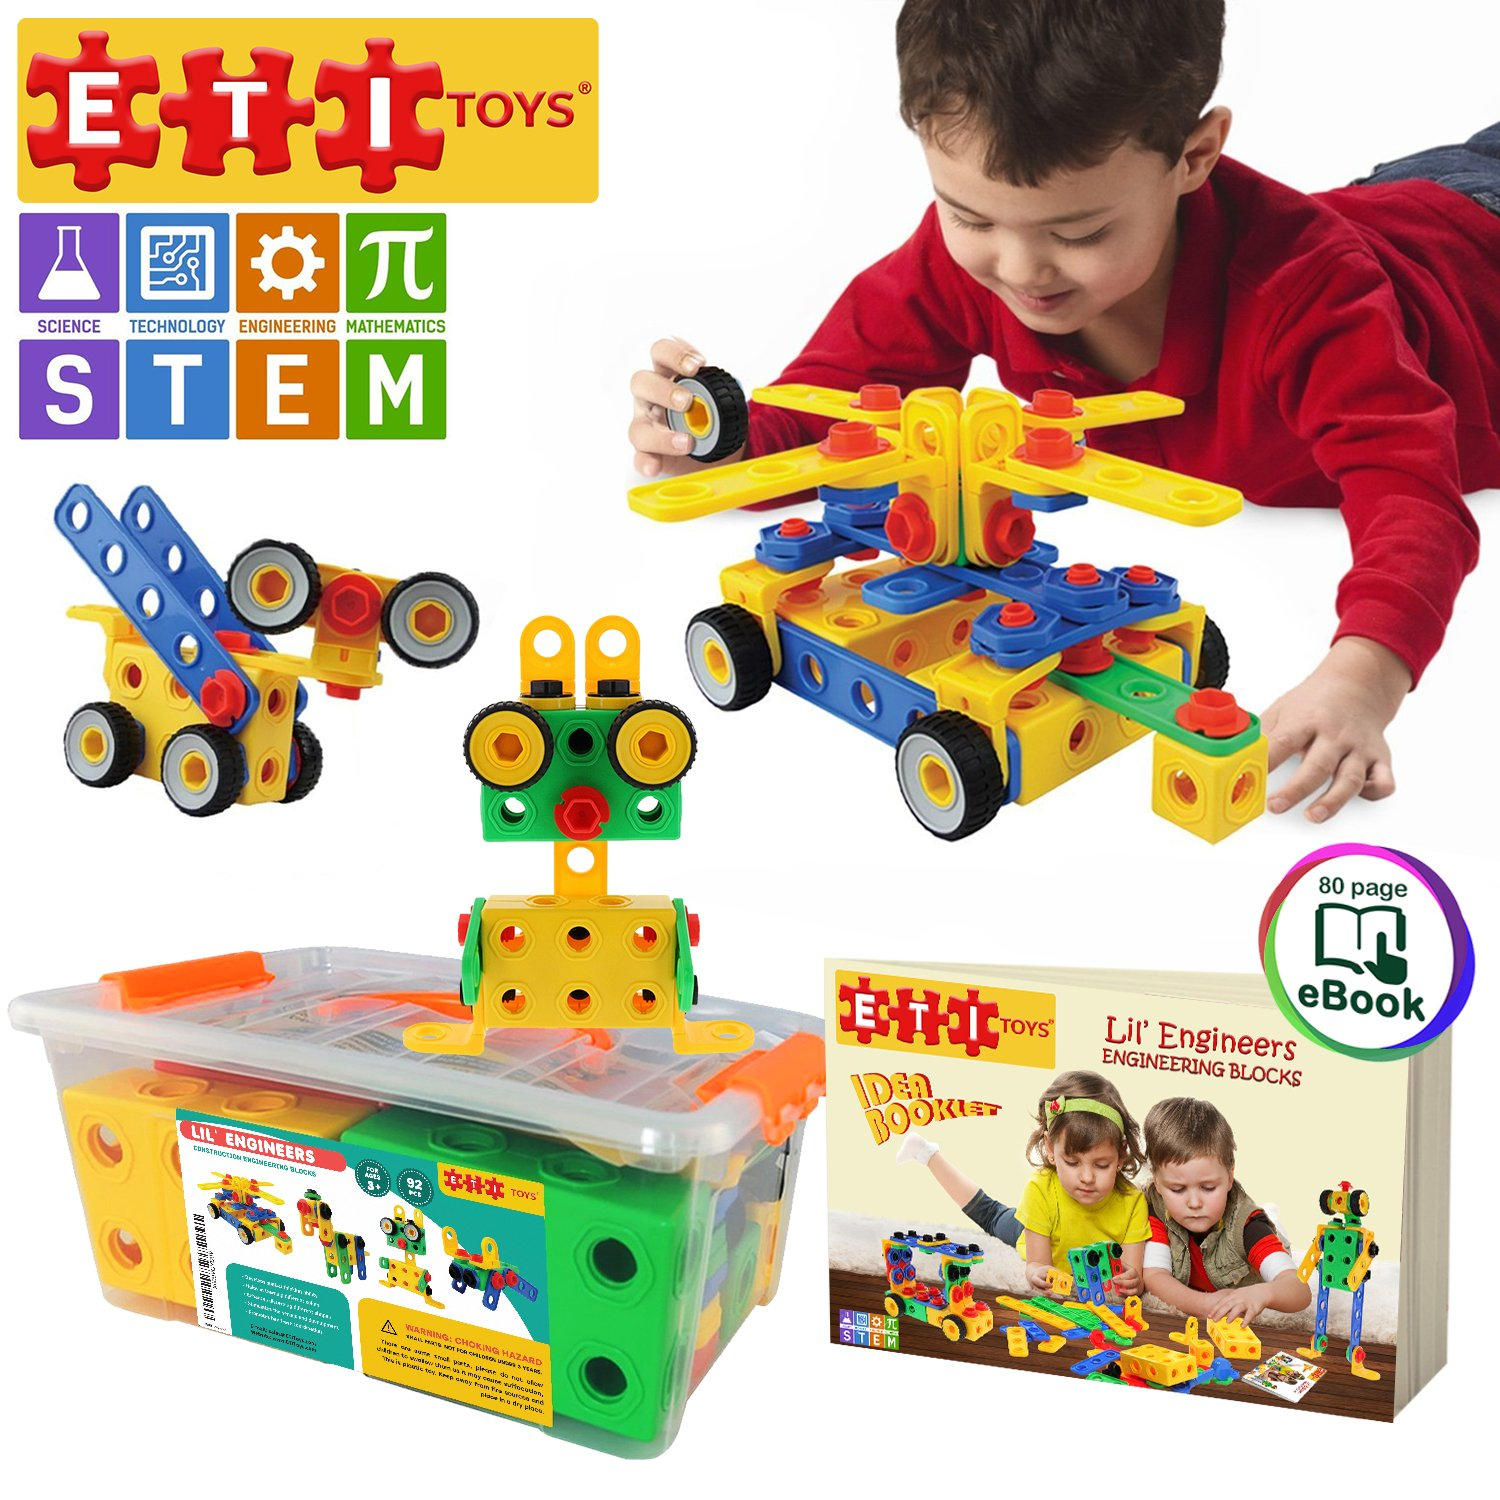 Toys For Boys 4 5 : Toys for year old boy uk wow